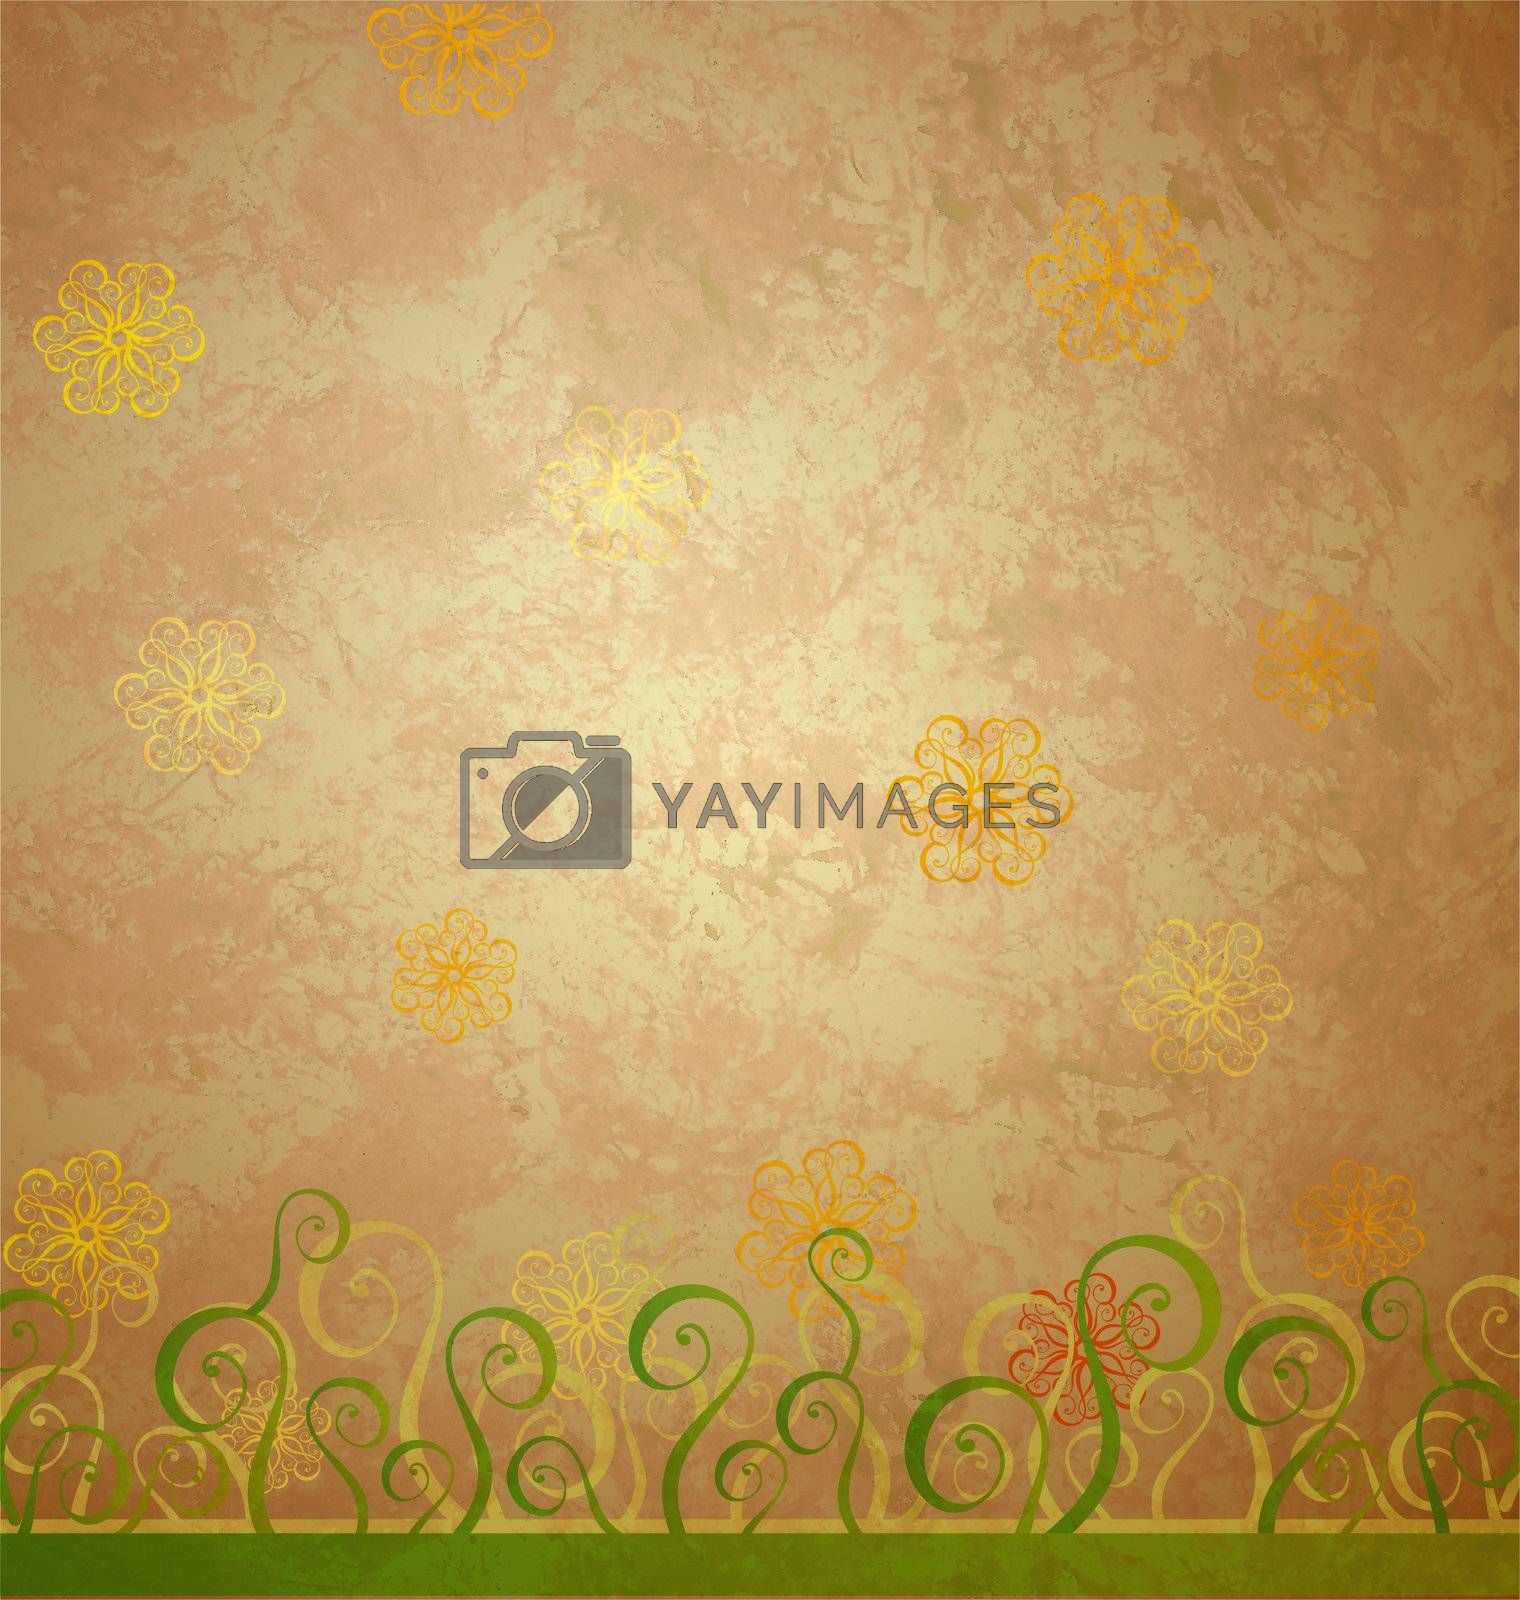 vintage style brown paper with yellow and green nature decor